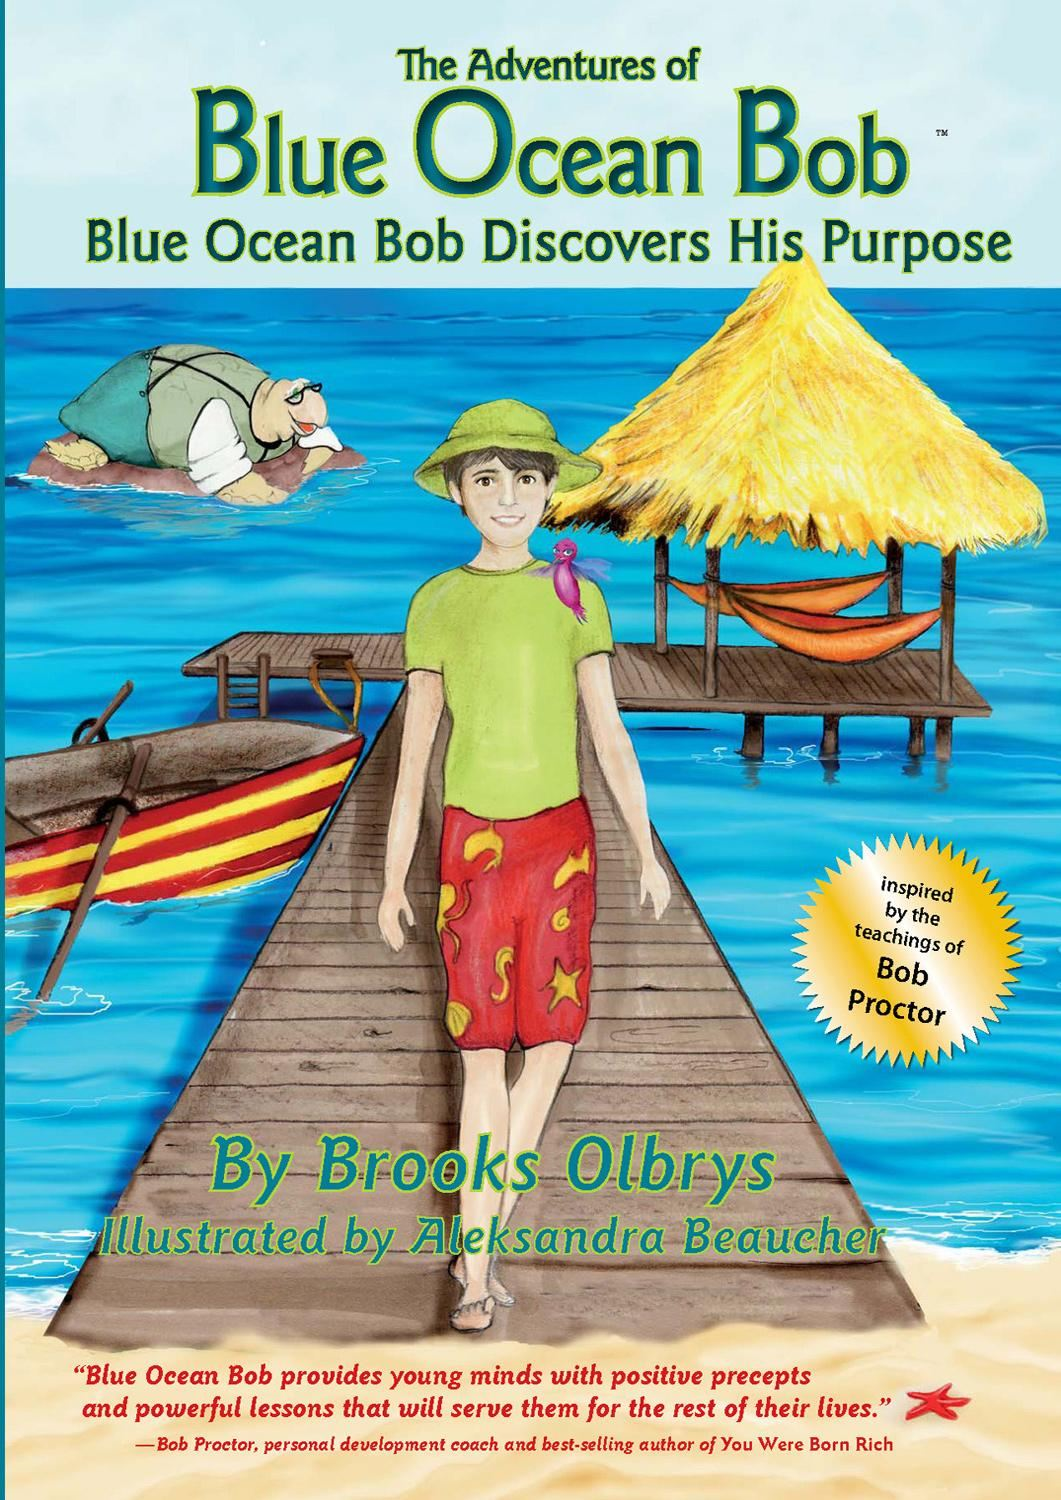 The Adventures of Blue Ocean Bob: Blue Ocean Bob Discovers His Purpose